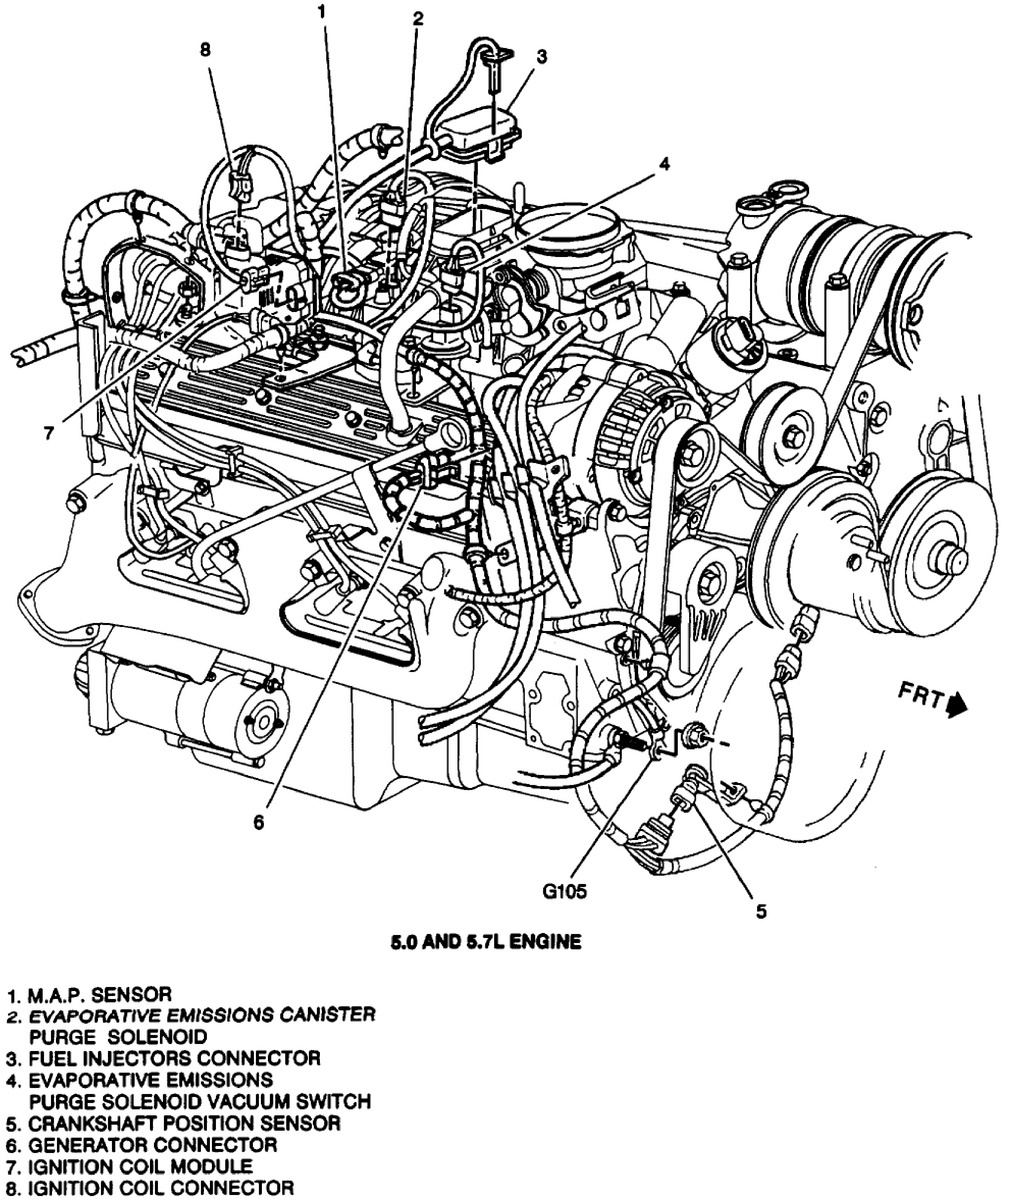 hight resolution of 2003 chevy silverado engine diagram wiring diagram used 2000 chevy silverado 1500 engine diagram